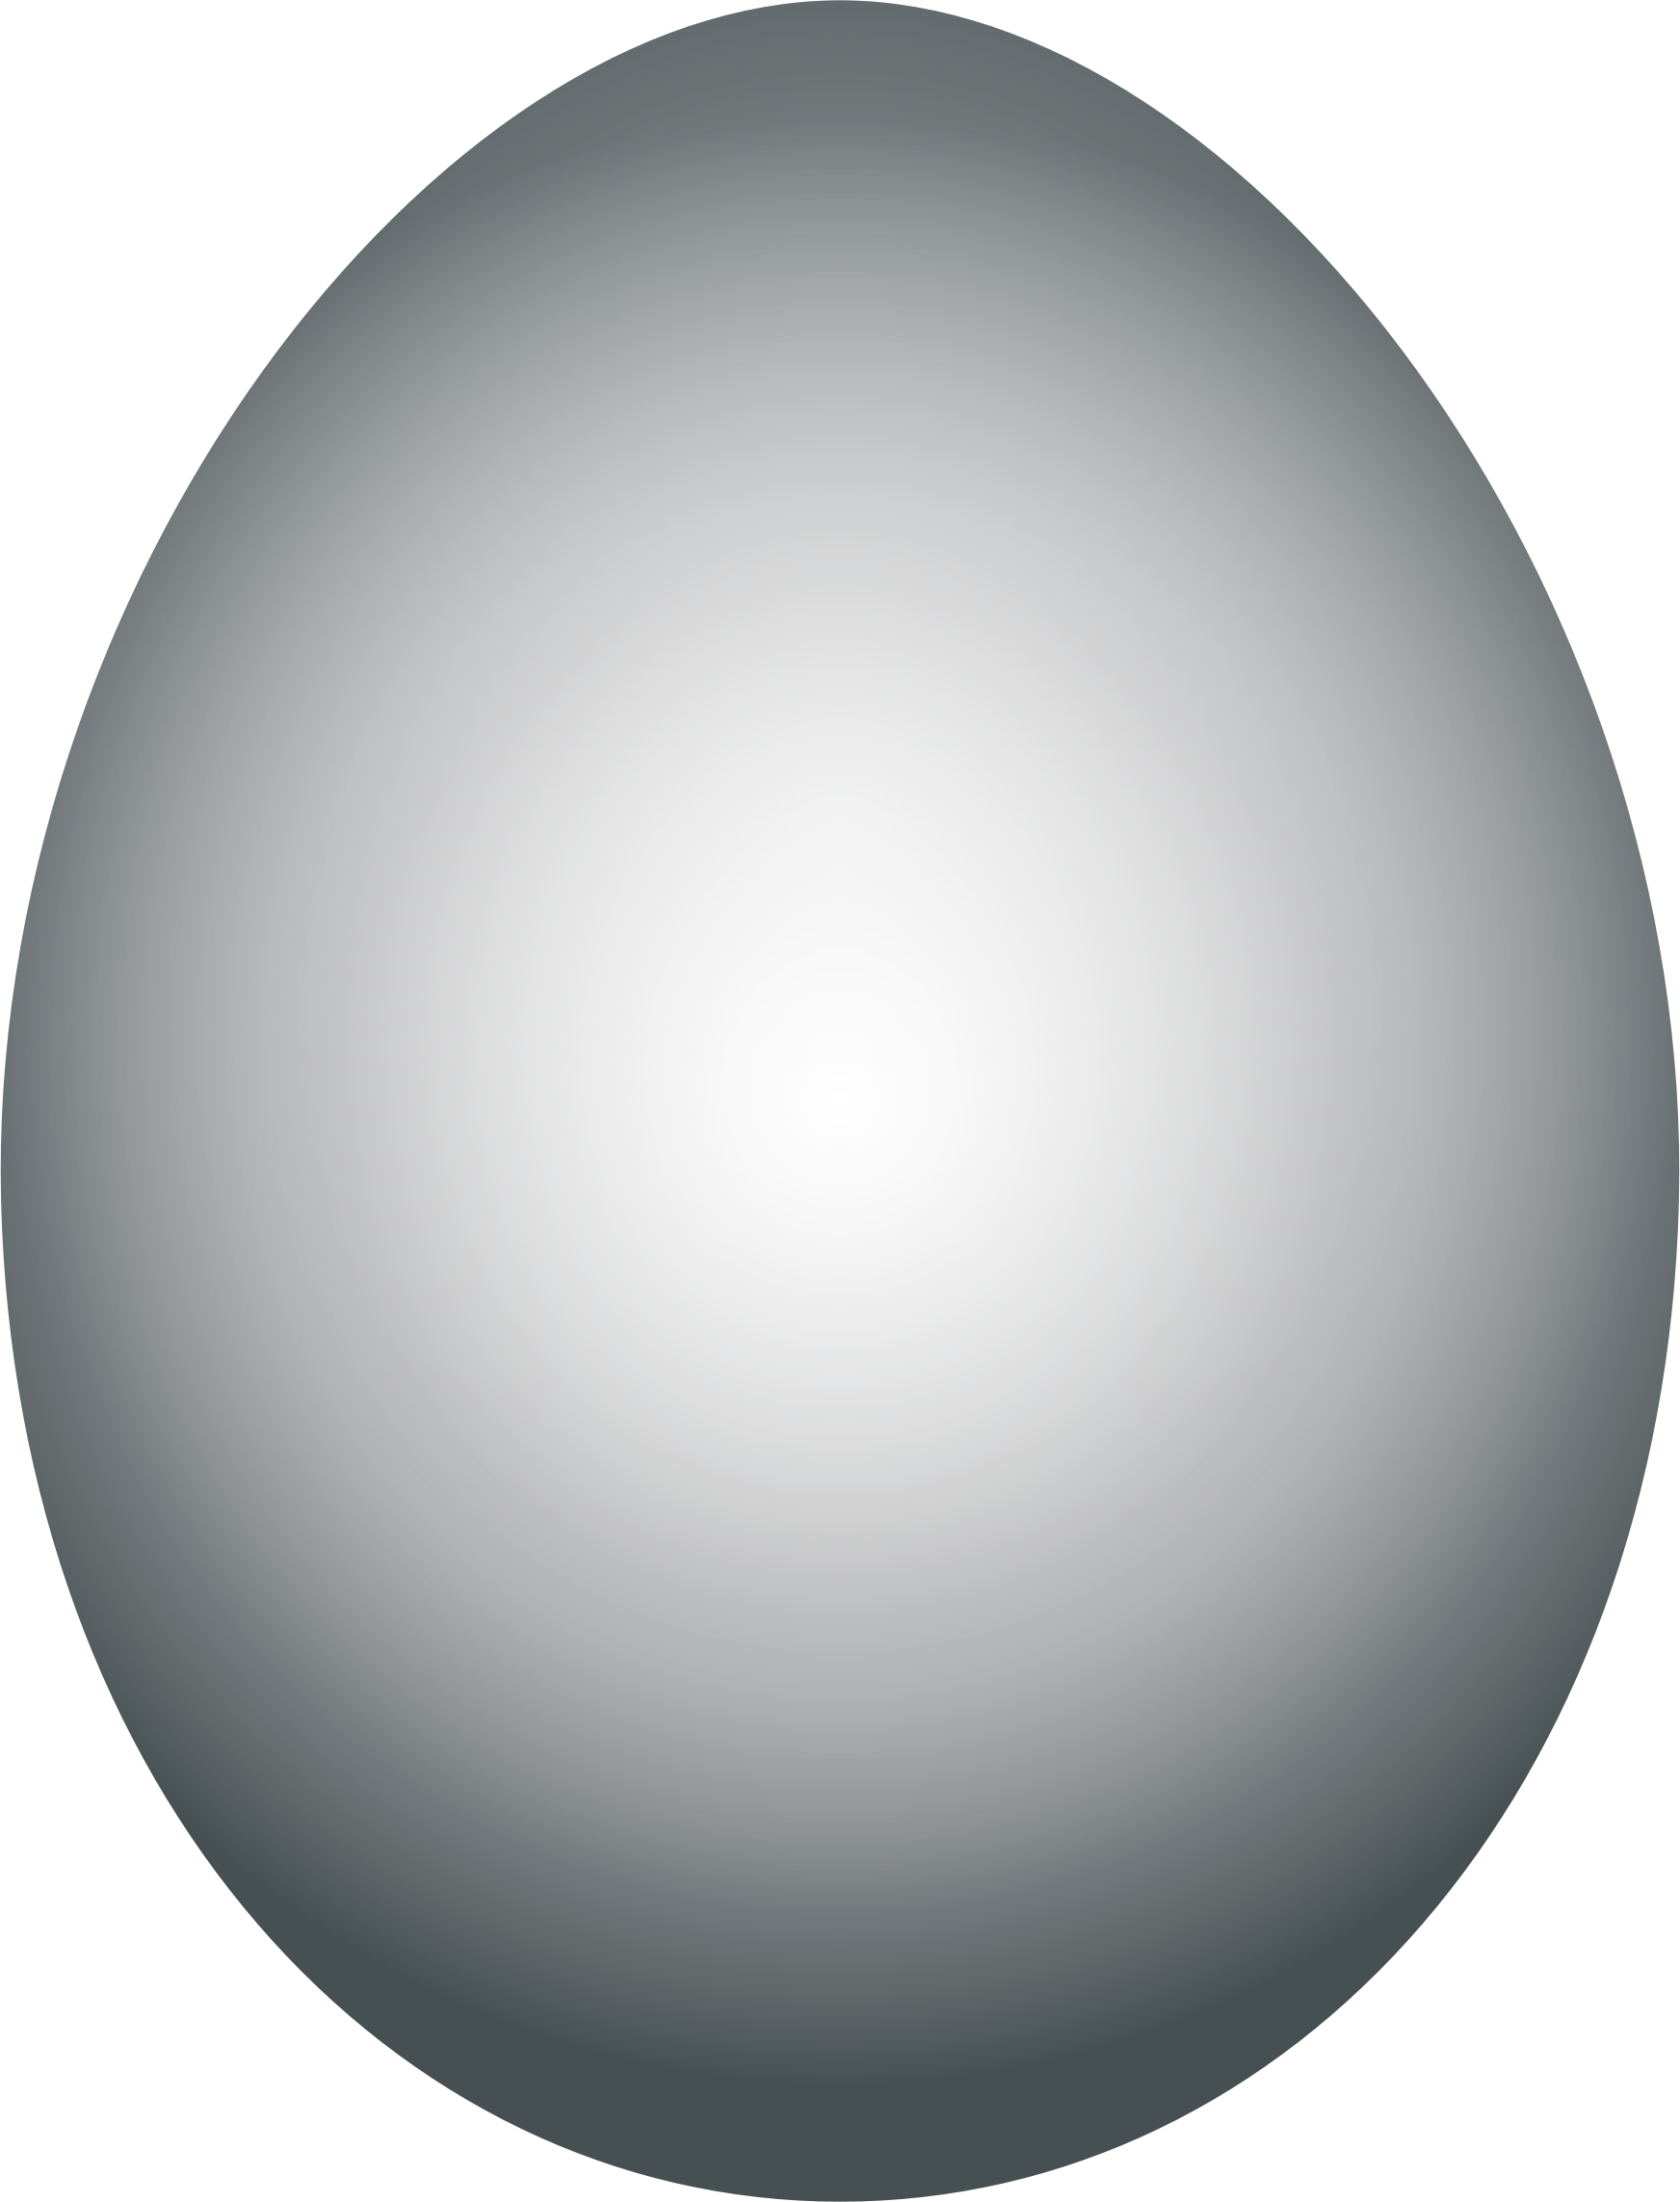 Grayscale Easter Egg by GDJ